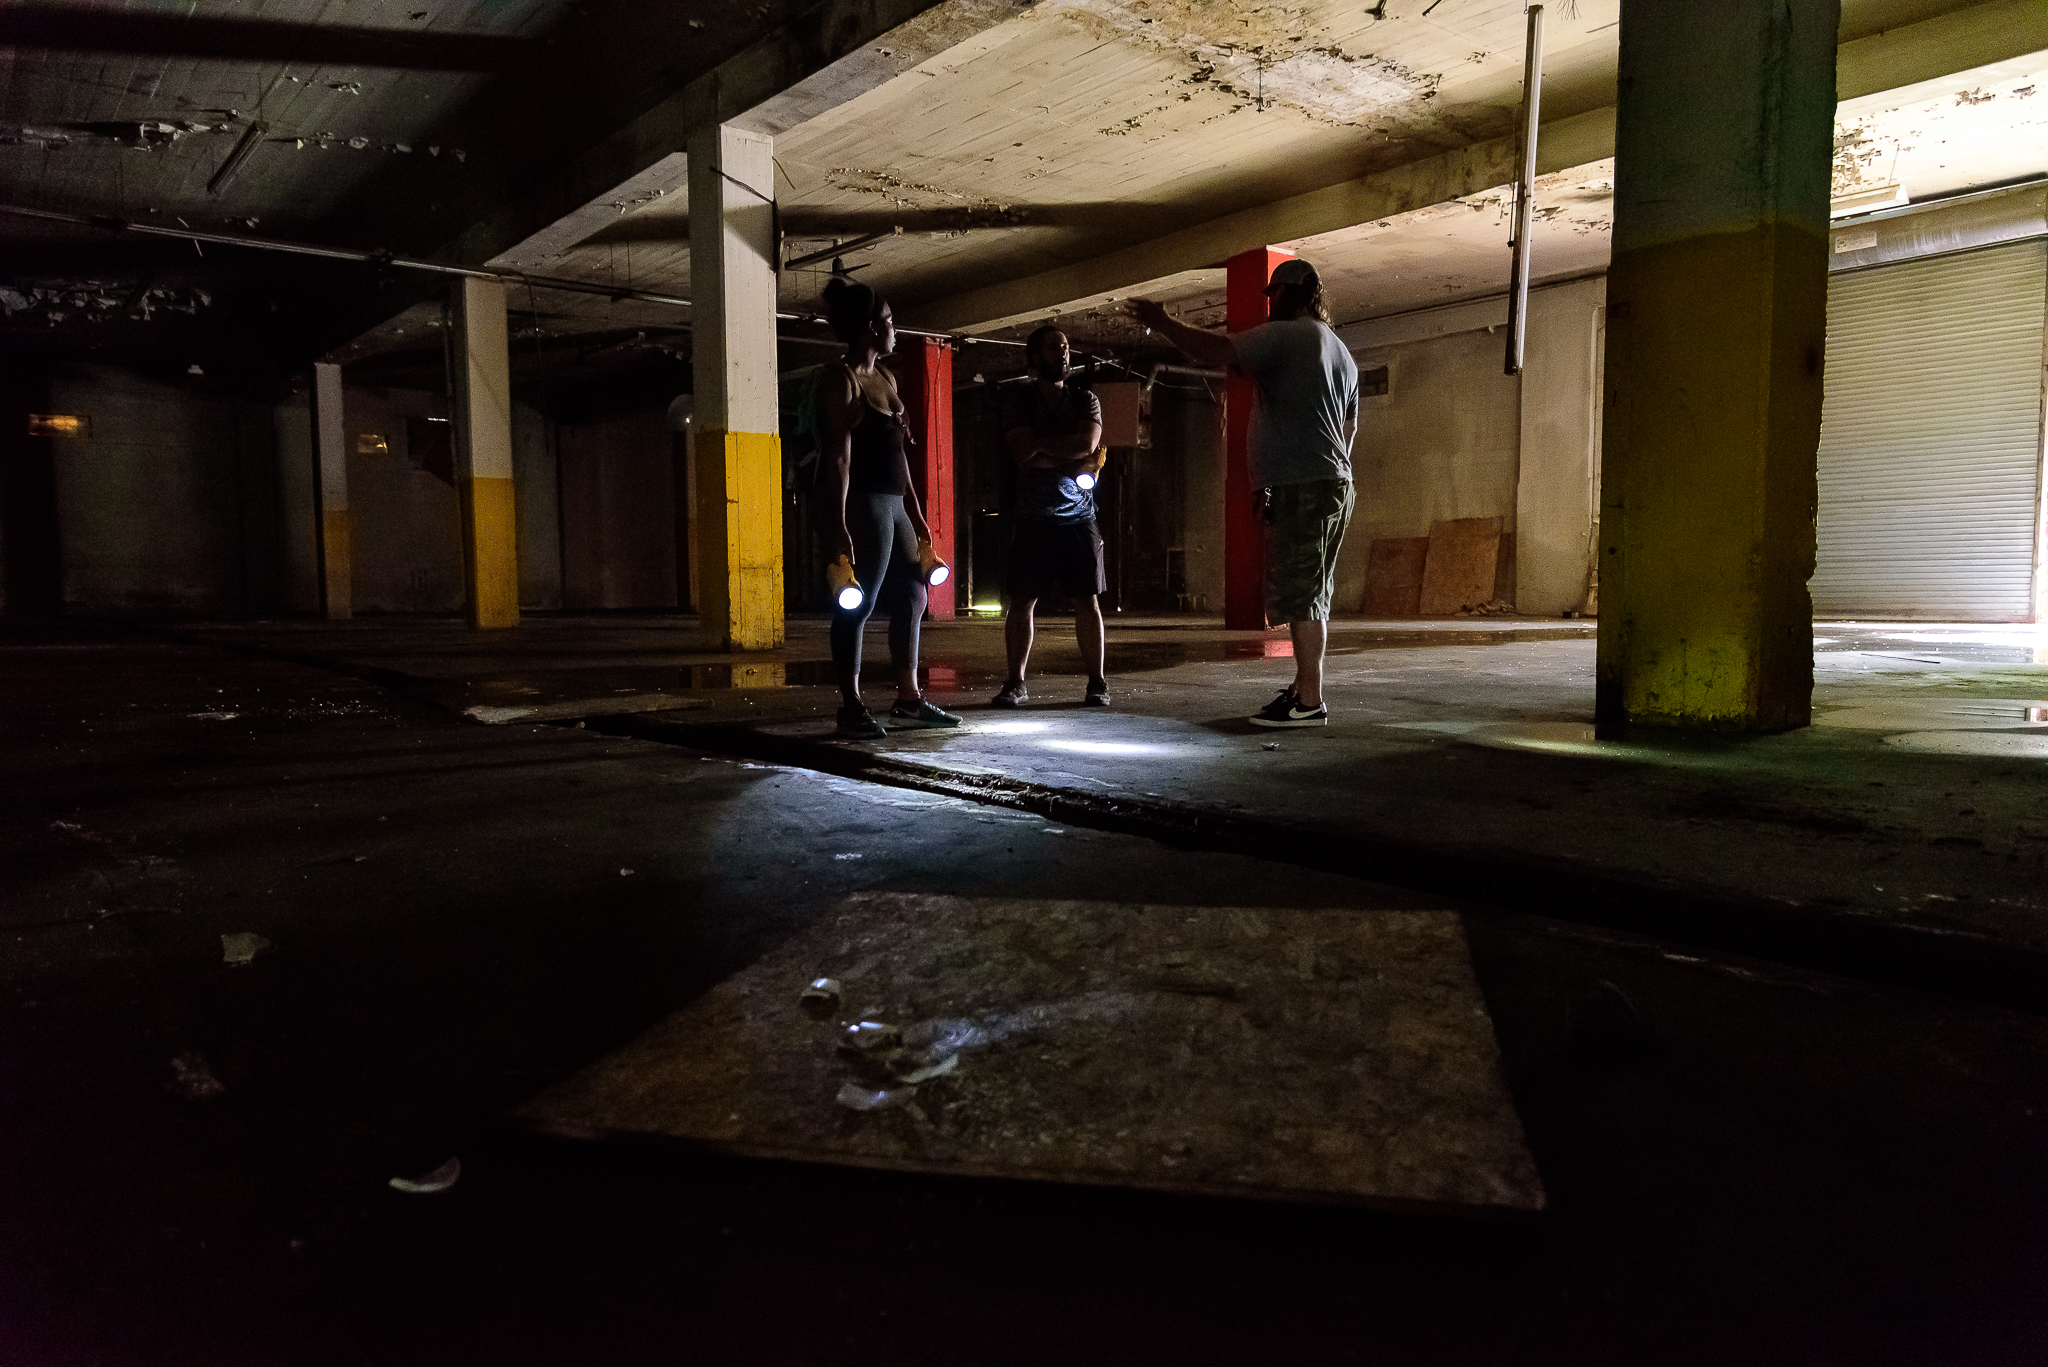 7/16/15. While tame, I got my first chance to explore an abandonded wharehouse. Ugh the possibilities....